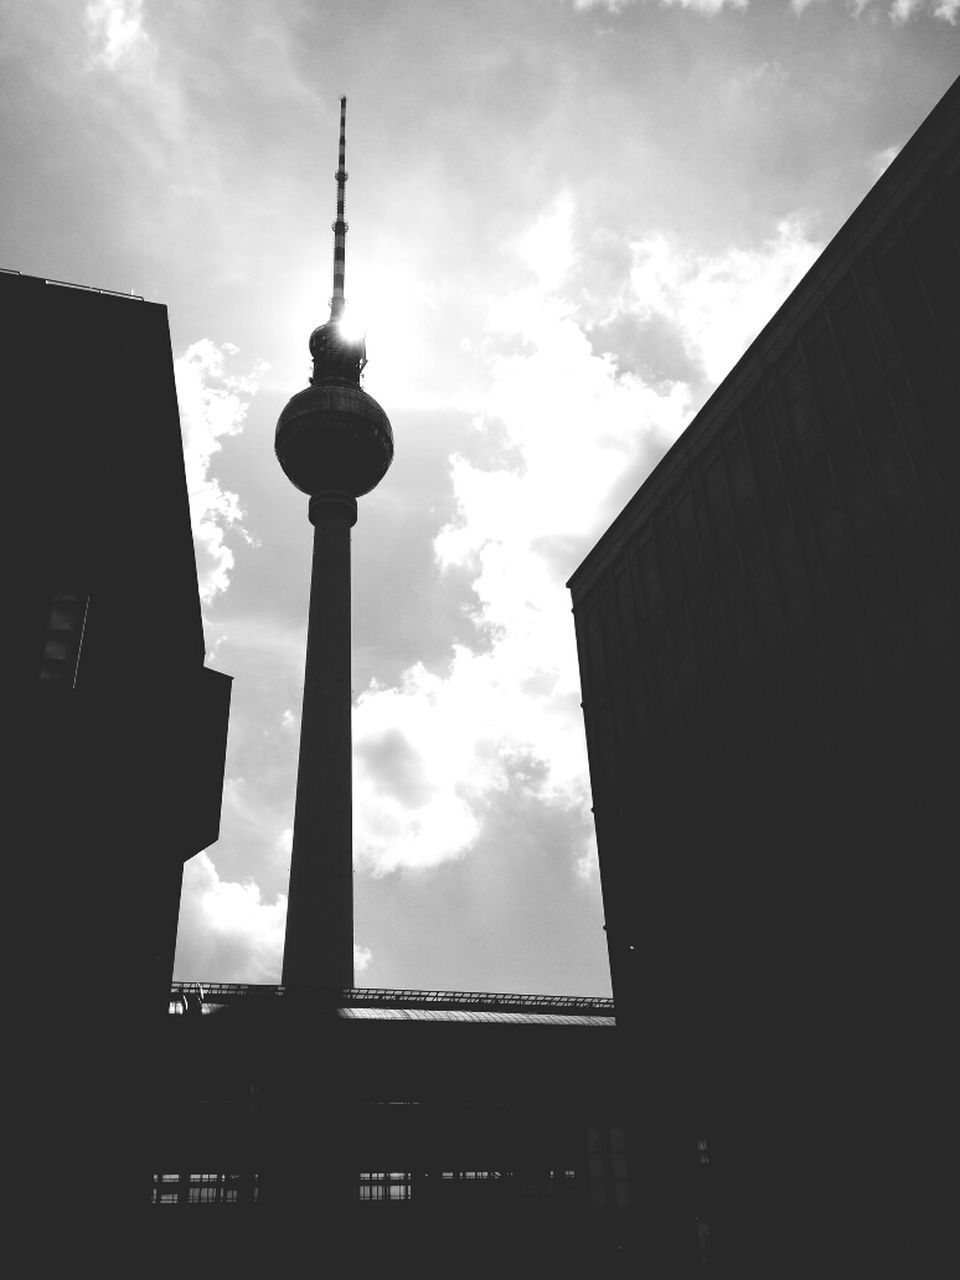 architecture, built structure, building exterior, low angle view, tall - high, tower, cloud - sky, sky, city, travel destinations, spire, communication, television tower, outdoors, no people, modern, day, silhouette, skyscraper